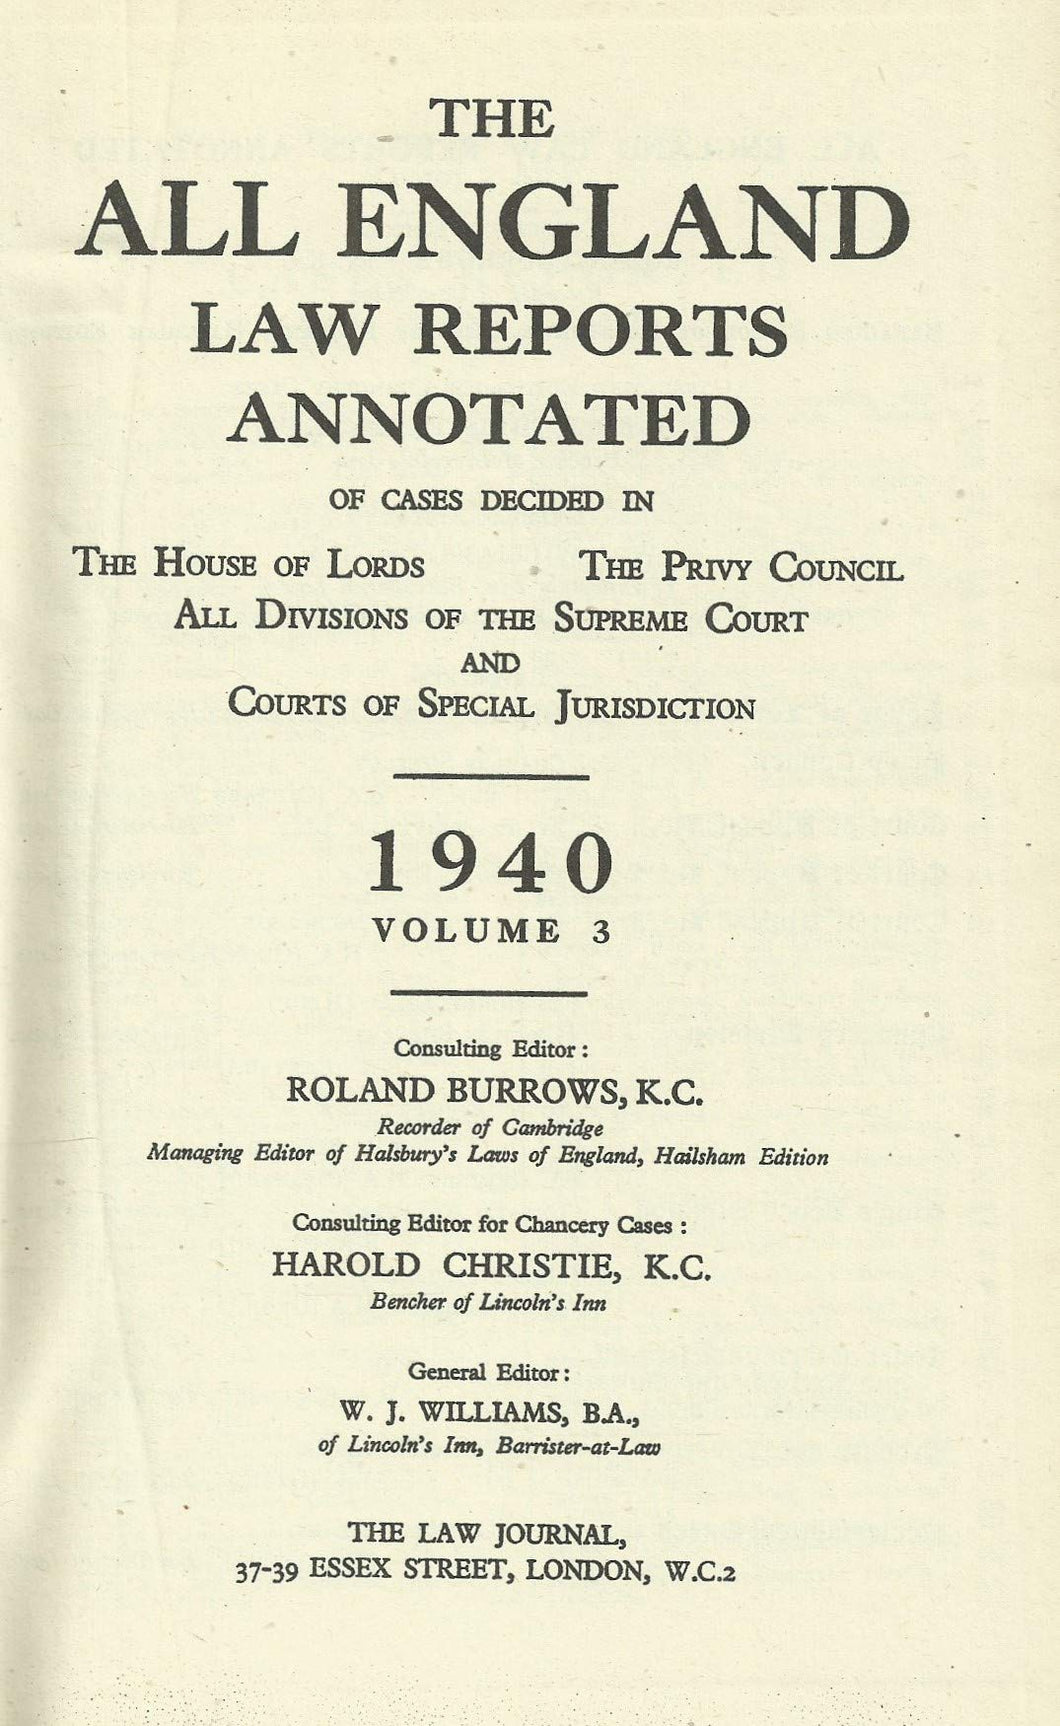 The All England Law Reports Annotated: 1940 Vol 3